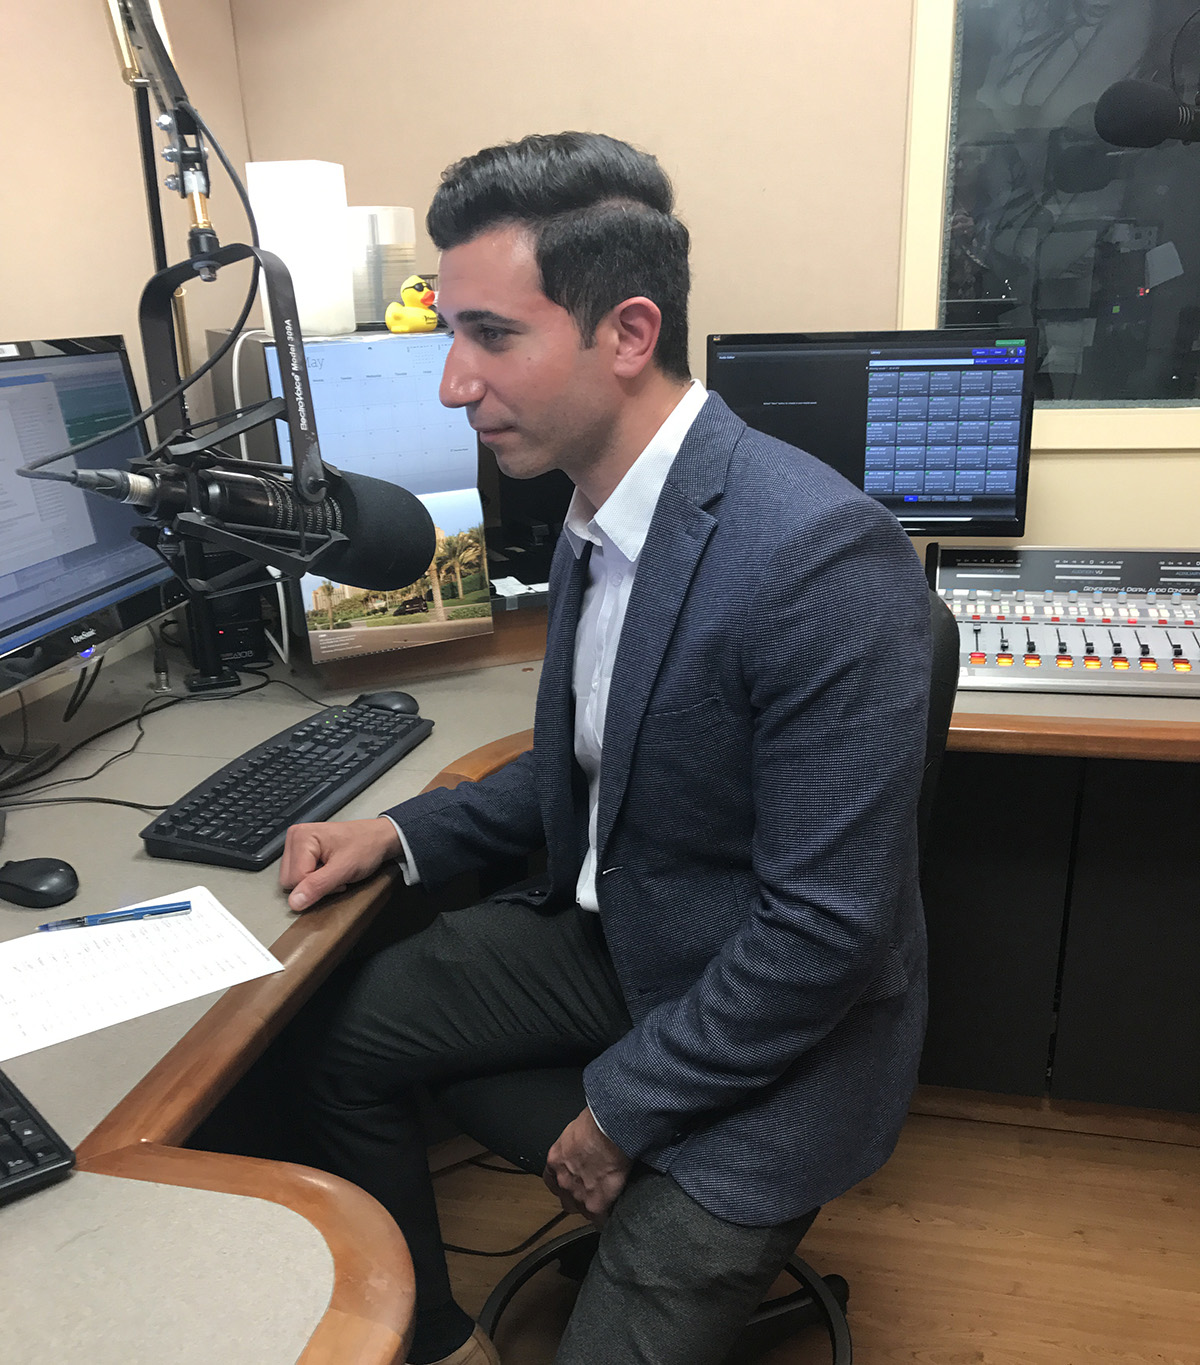 Dr Christoforou recording a radio commercial at the WBLI recording studios